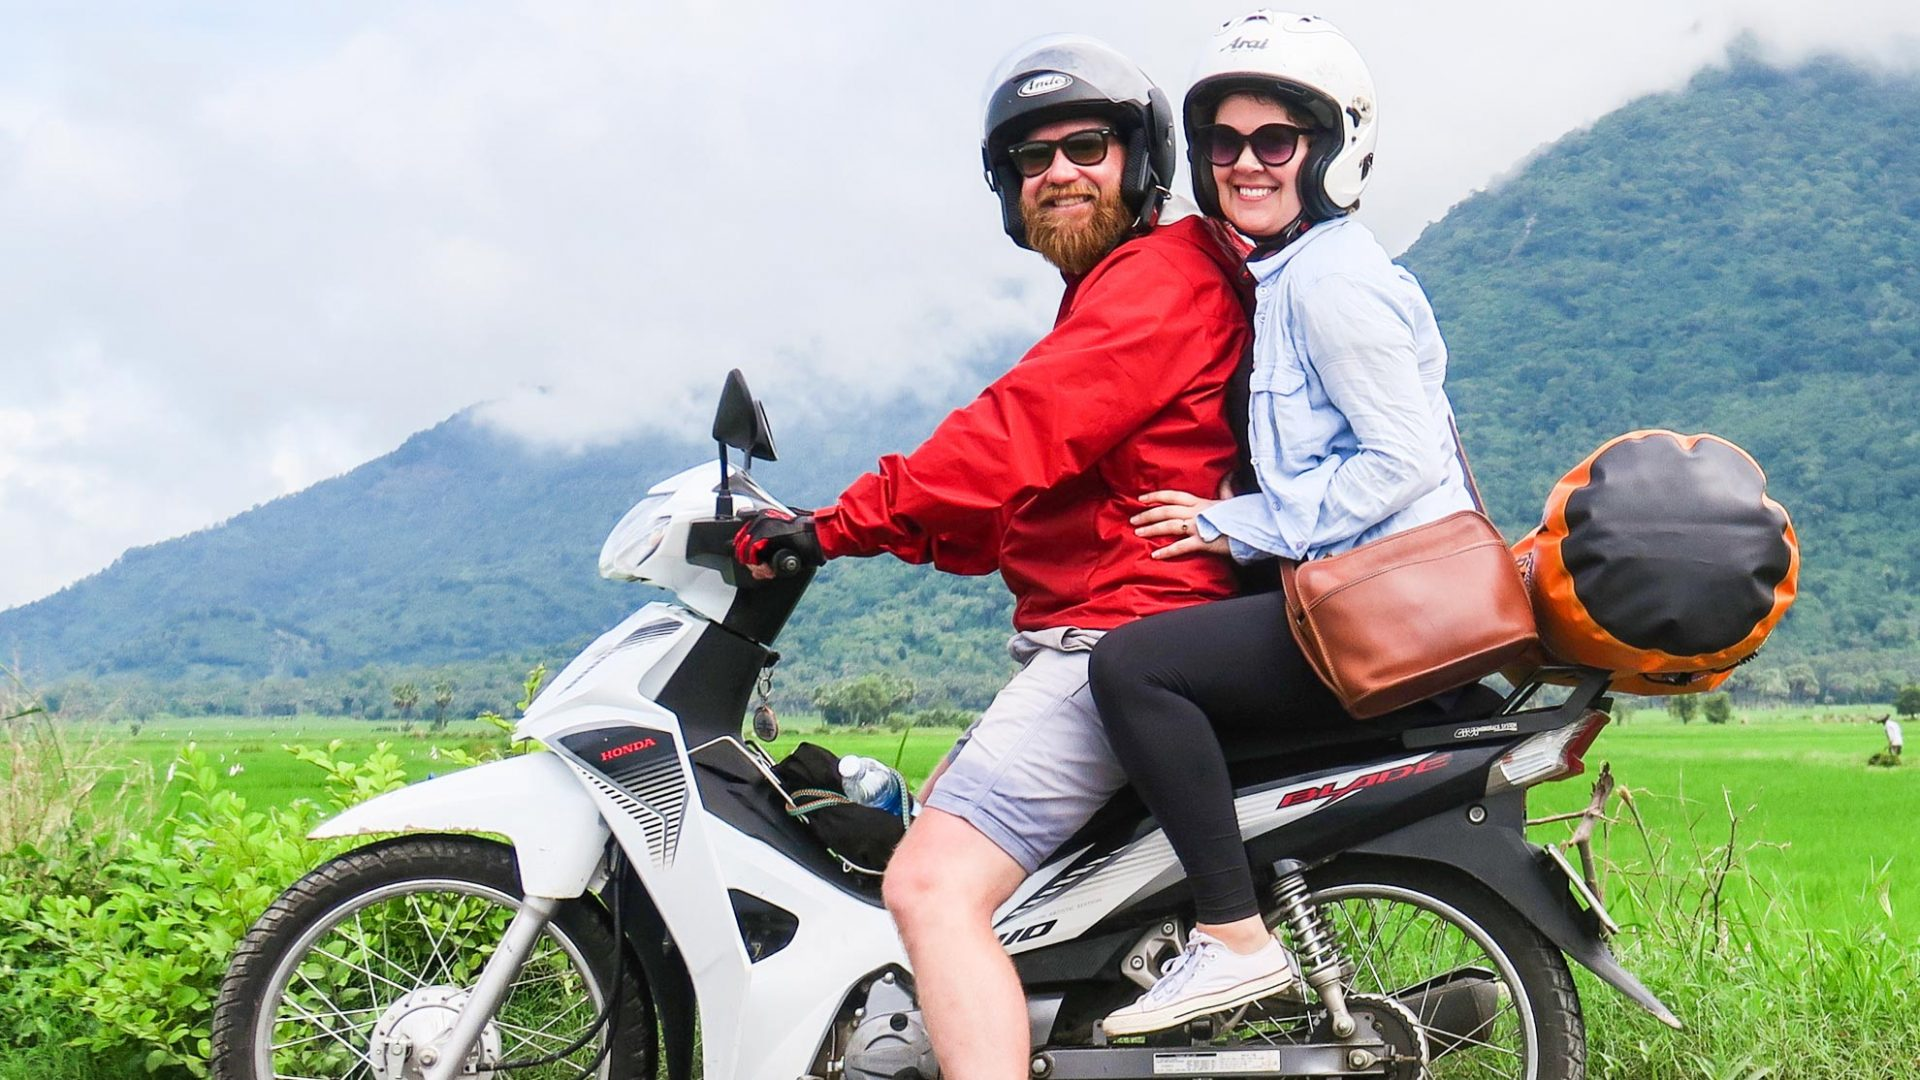 Writer Ben Groundwater has his photo taken on his rented scooter in Vietnam.